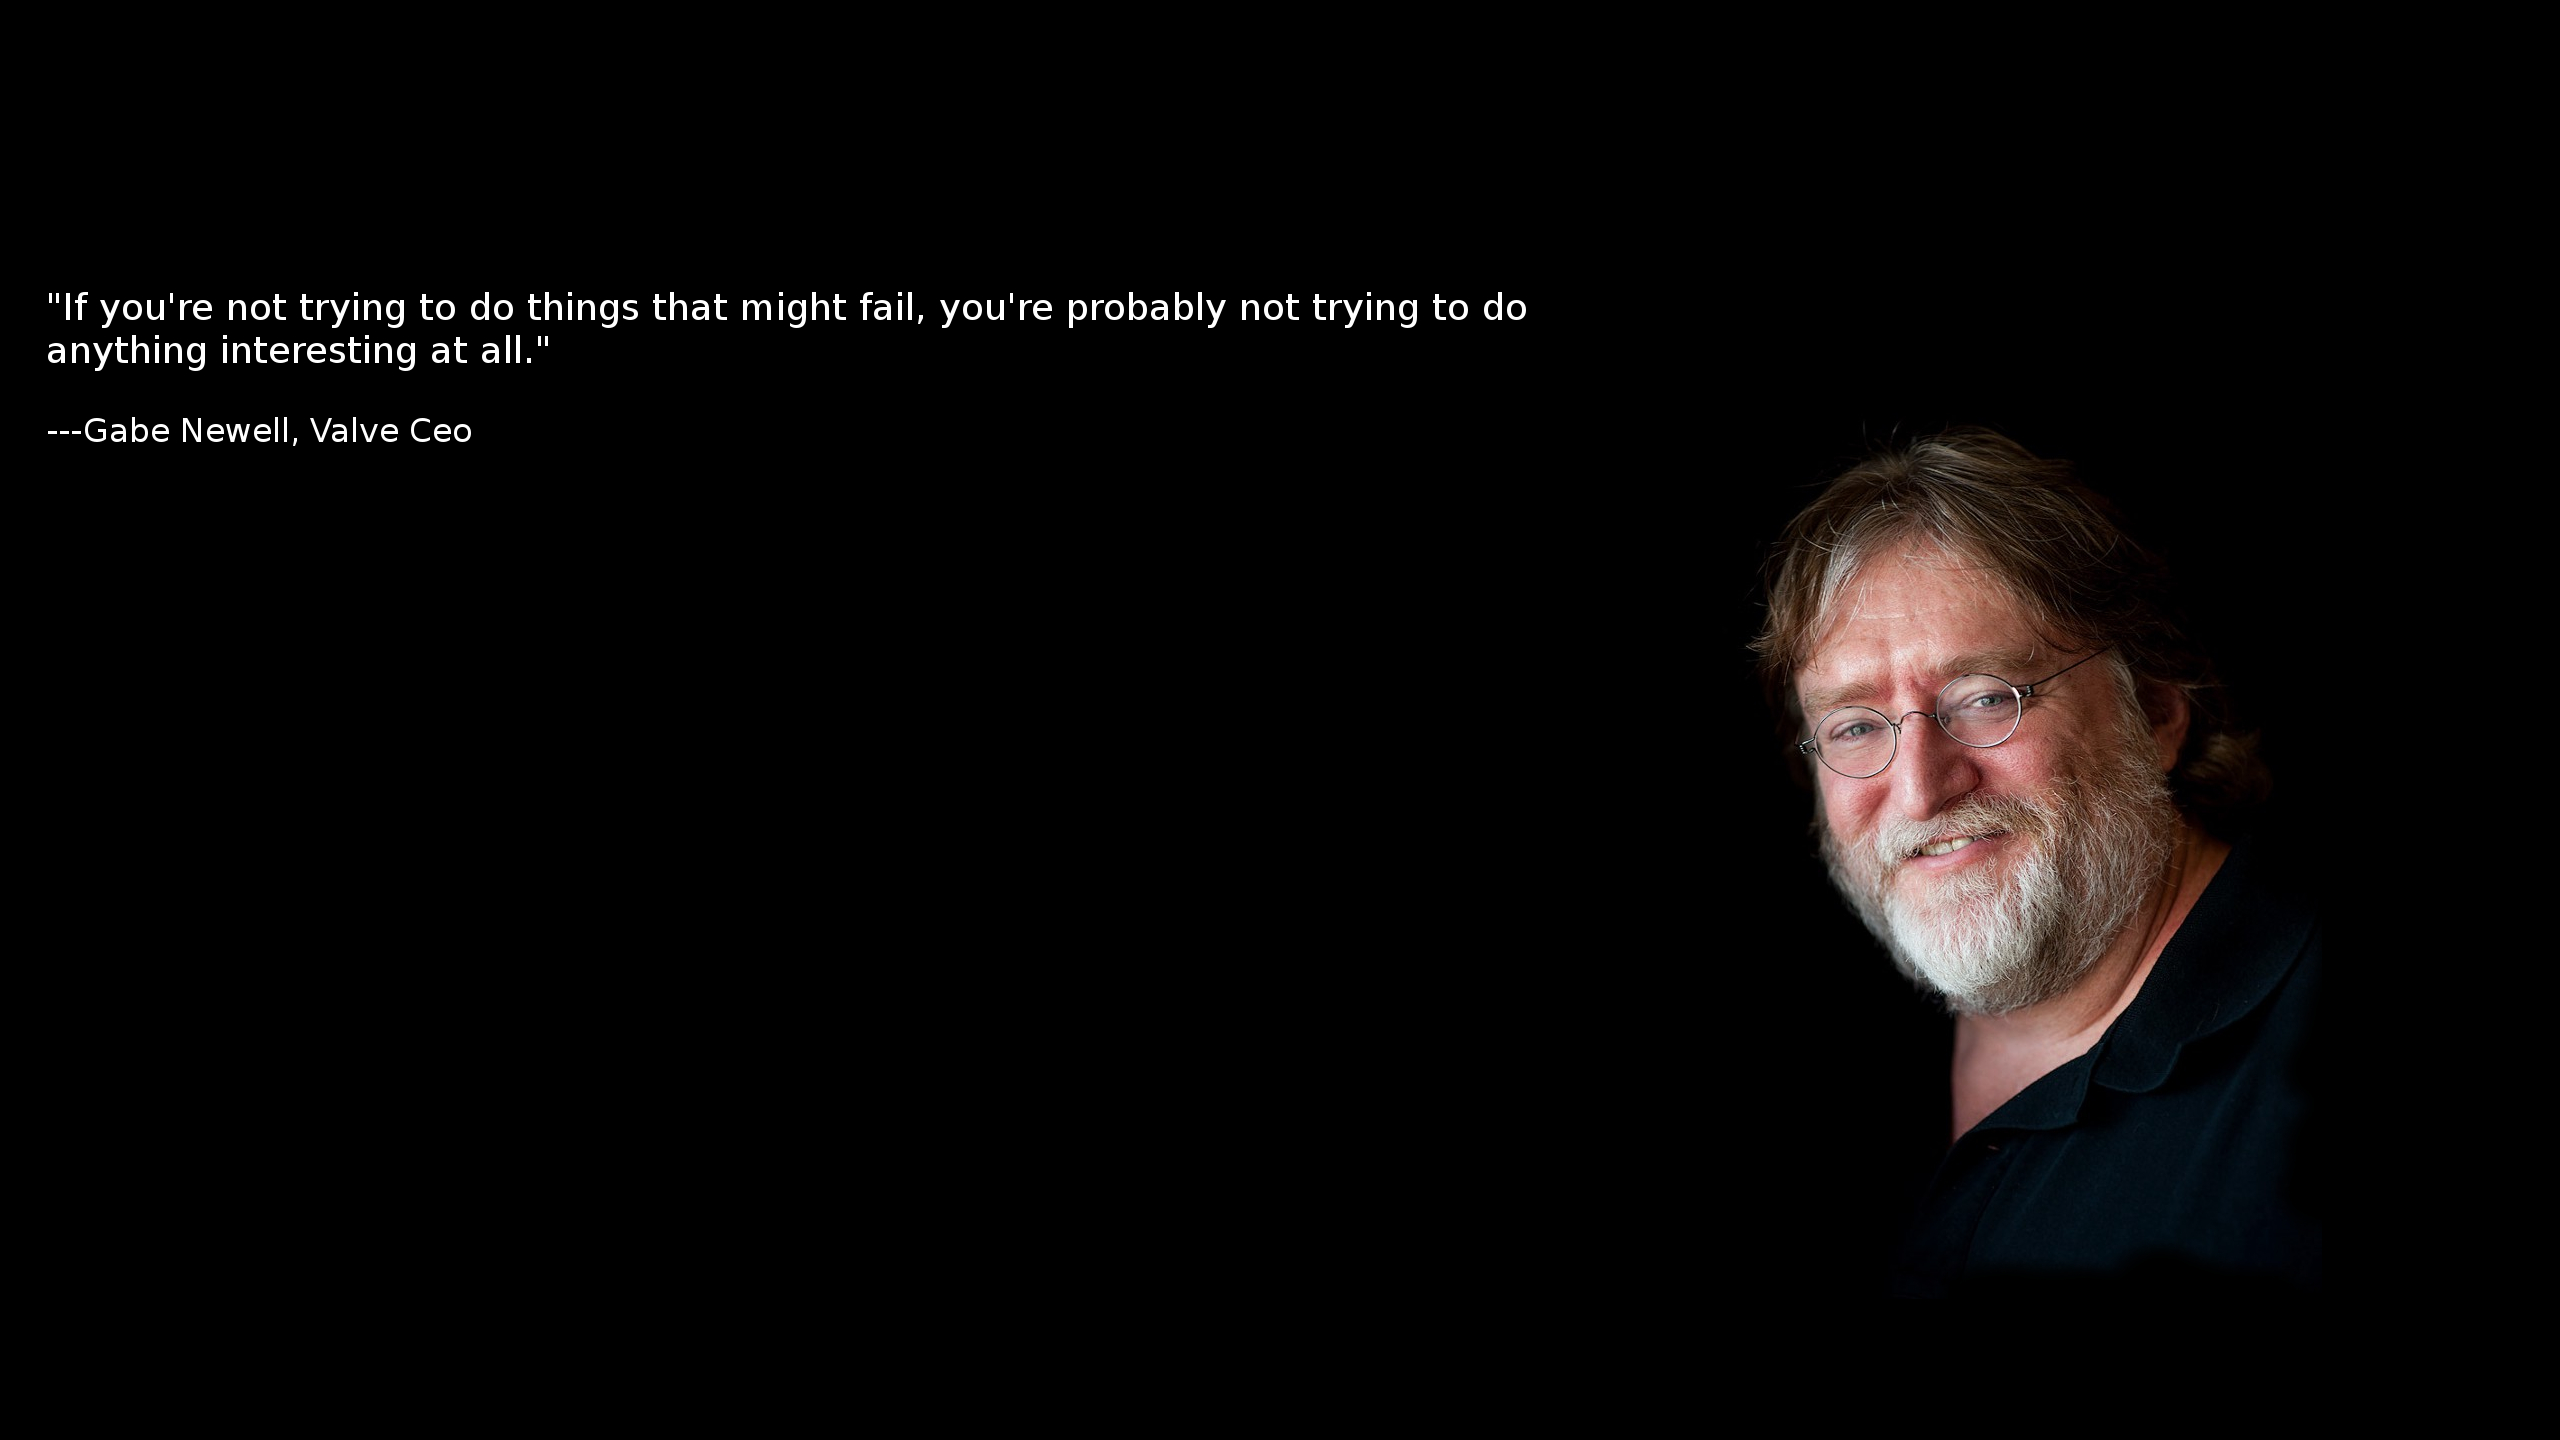 [Image] Listen to the 4 Billion Dollar Man (x-post The_Gaben)